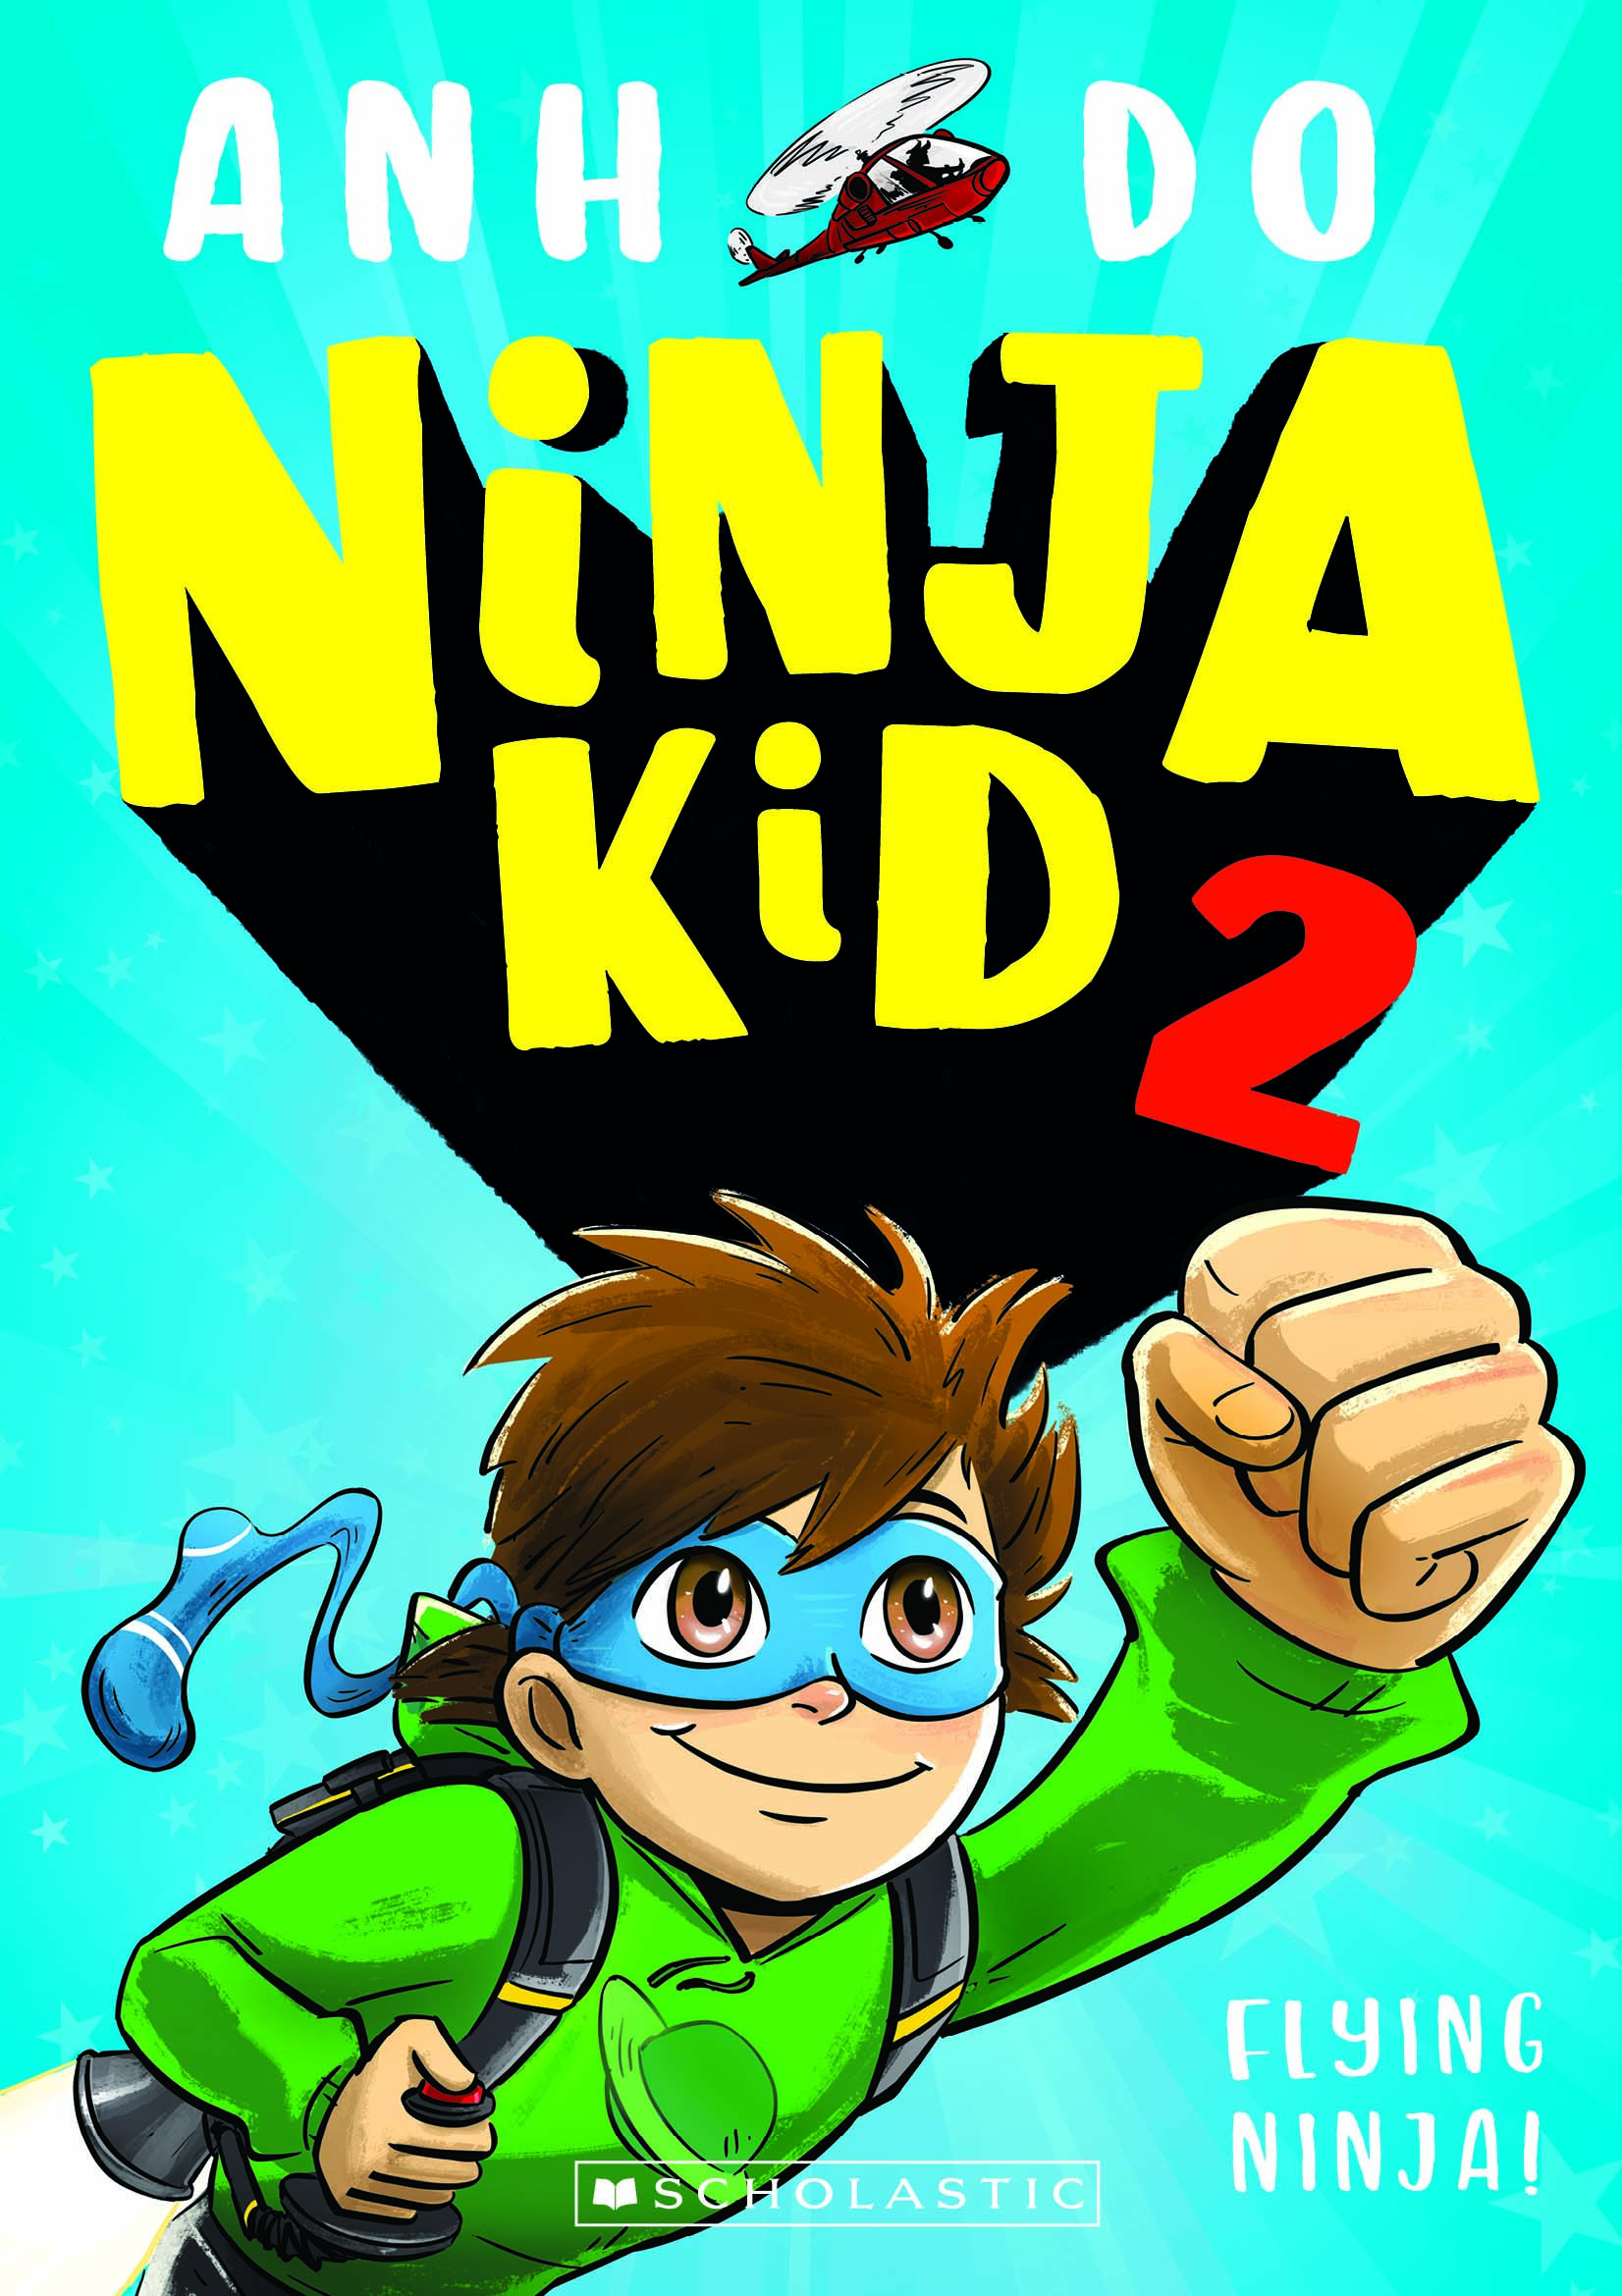 Anh Do - Ninja Kid 2